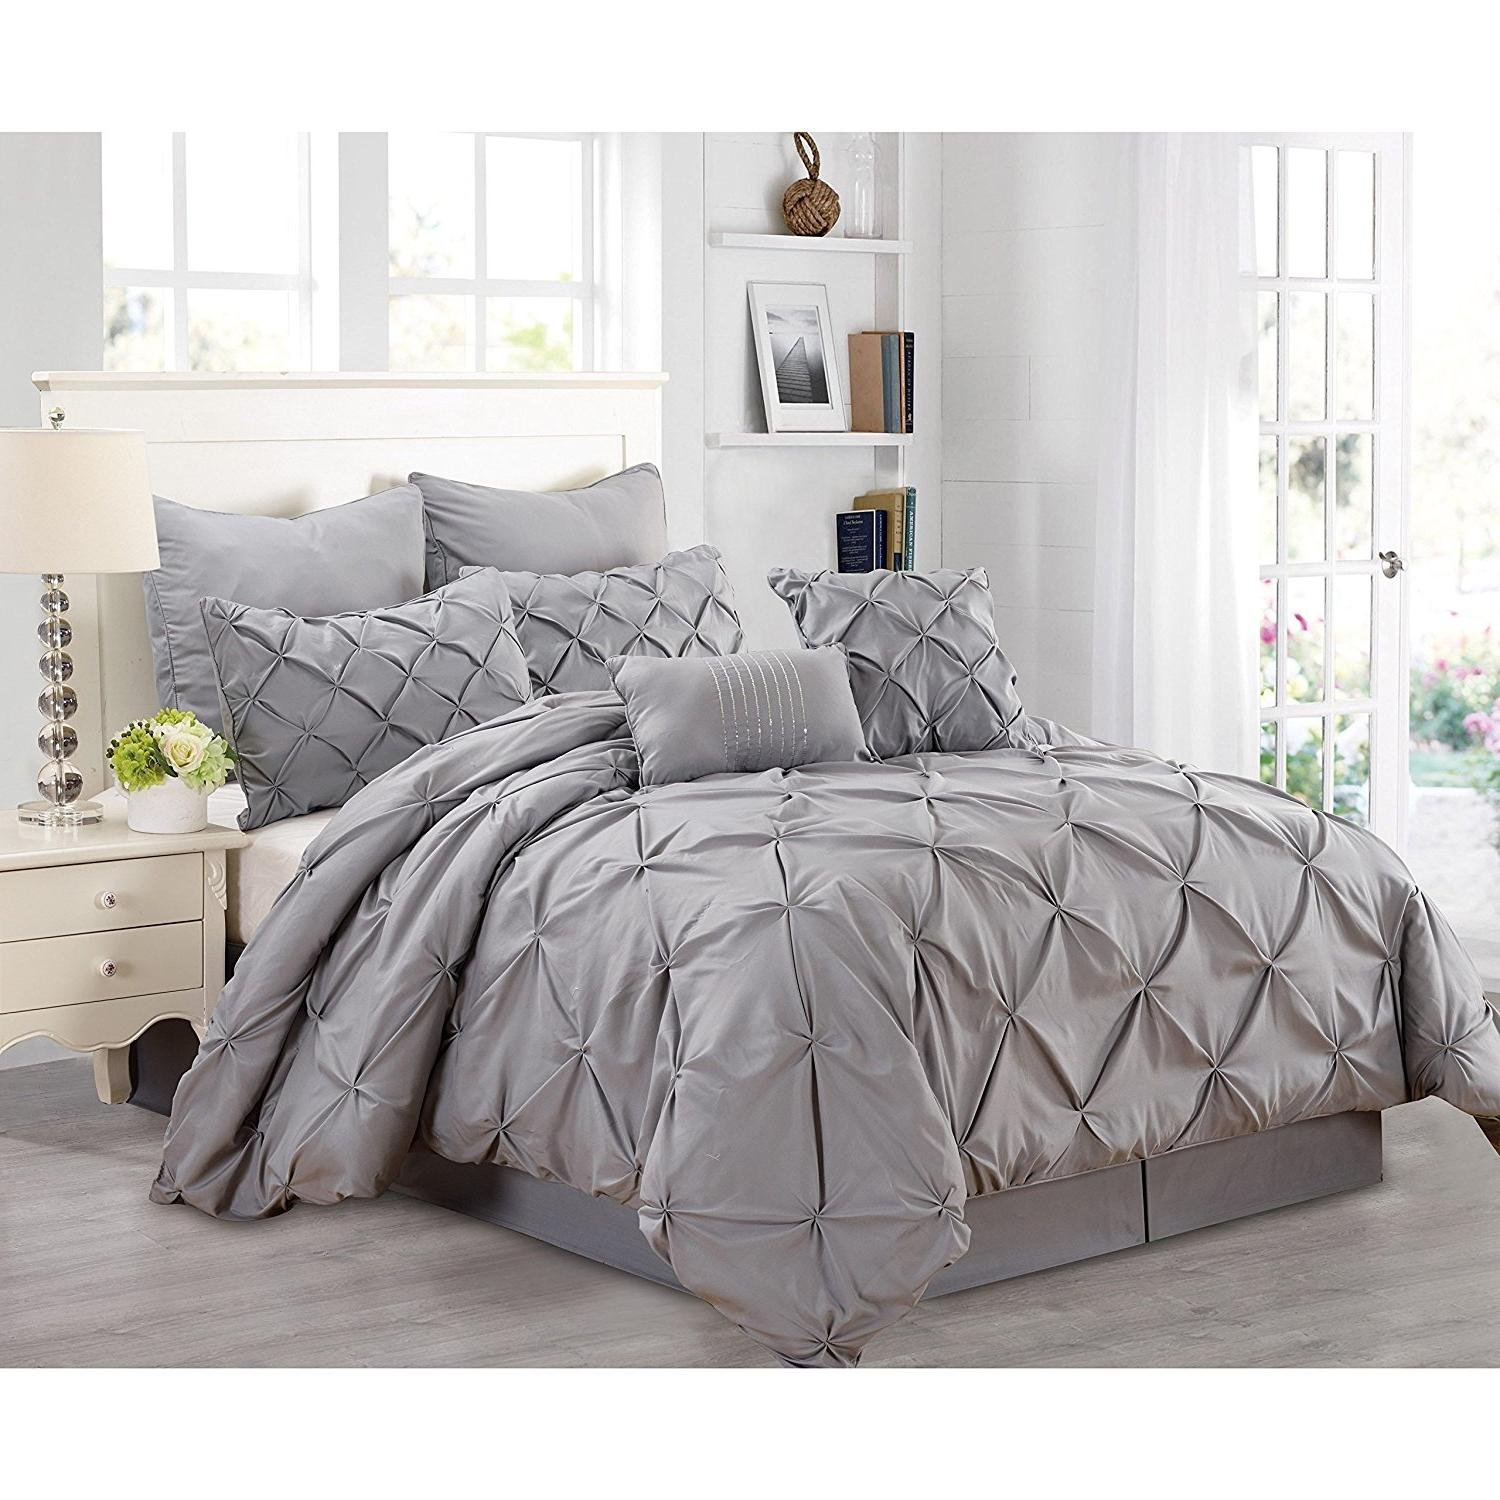 Cheap French Country Bedding Find French Country Bedding Deals On Line At Alibaba Com